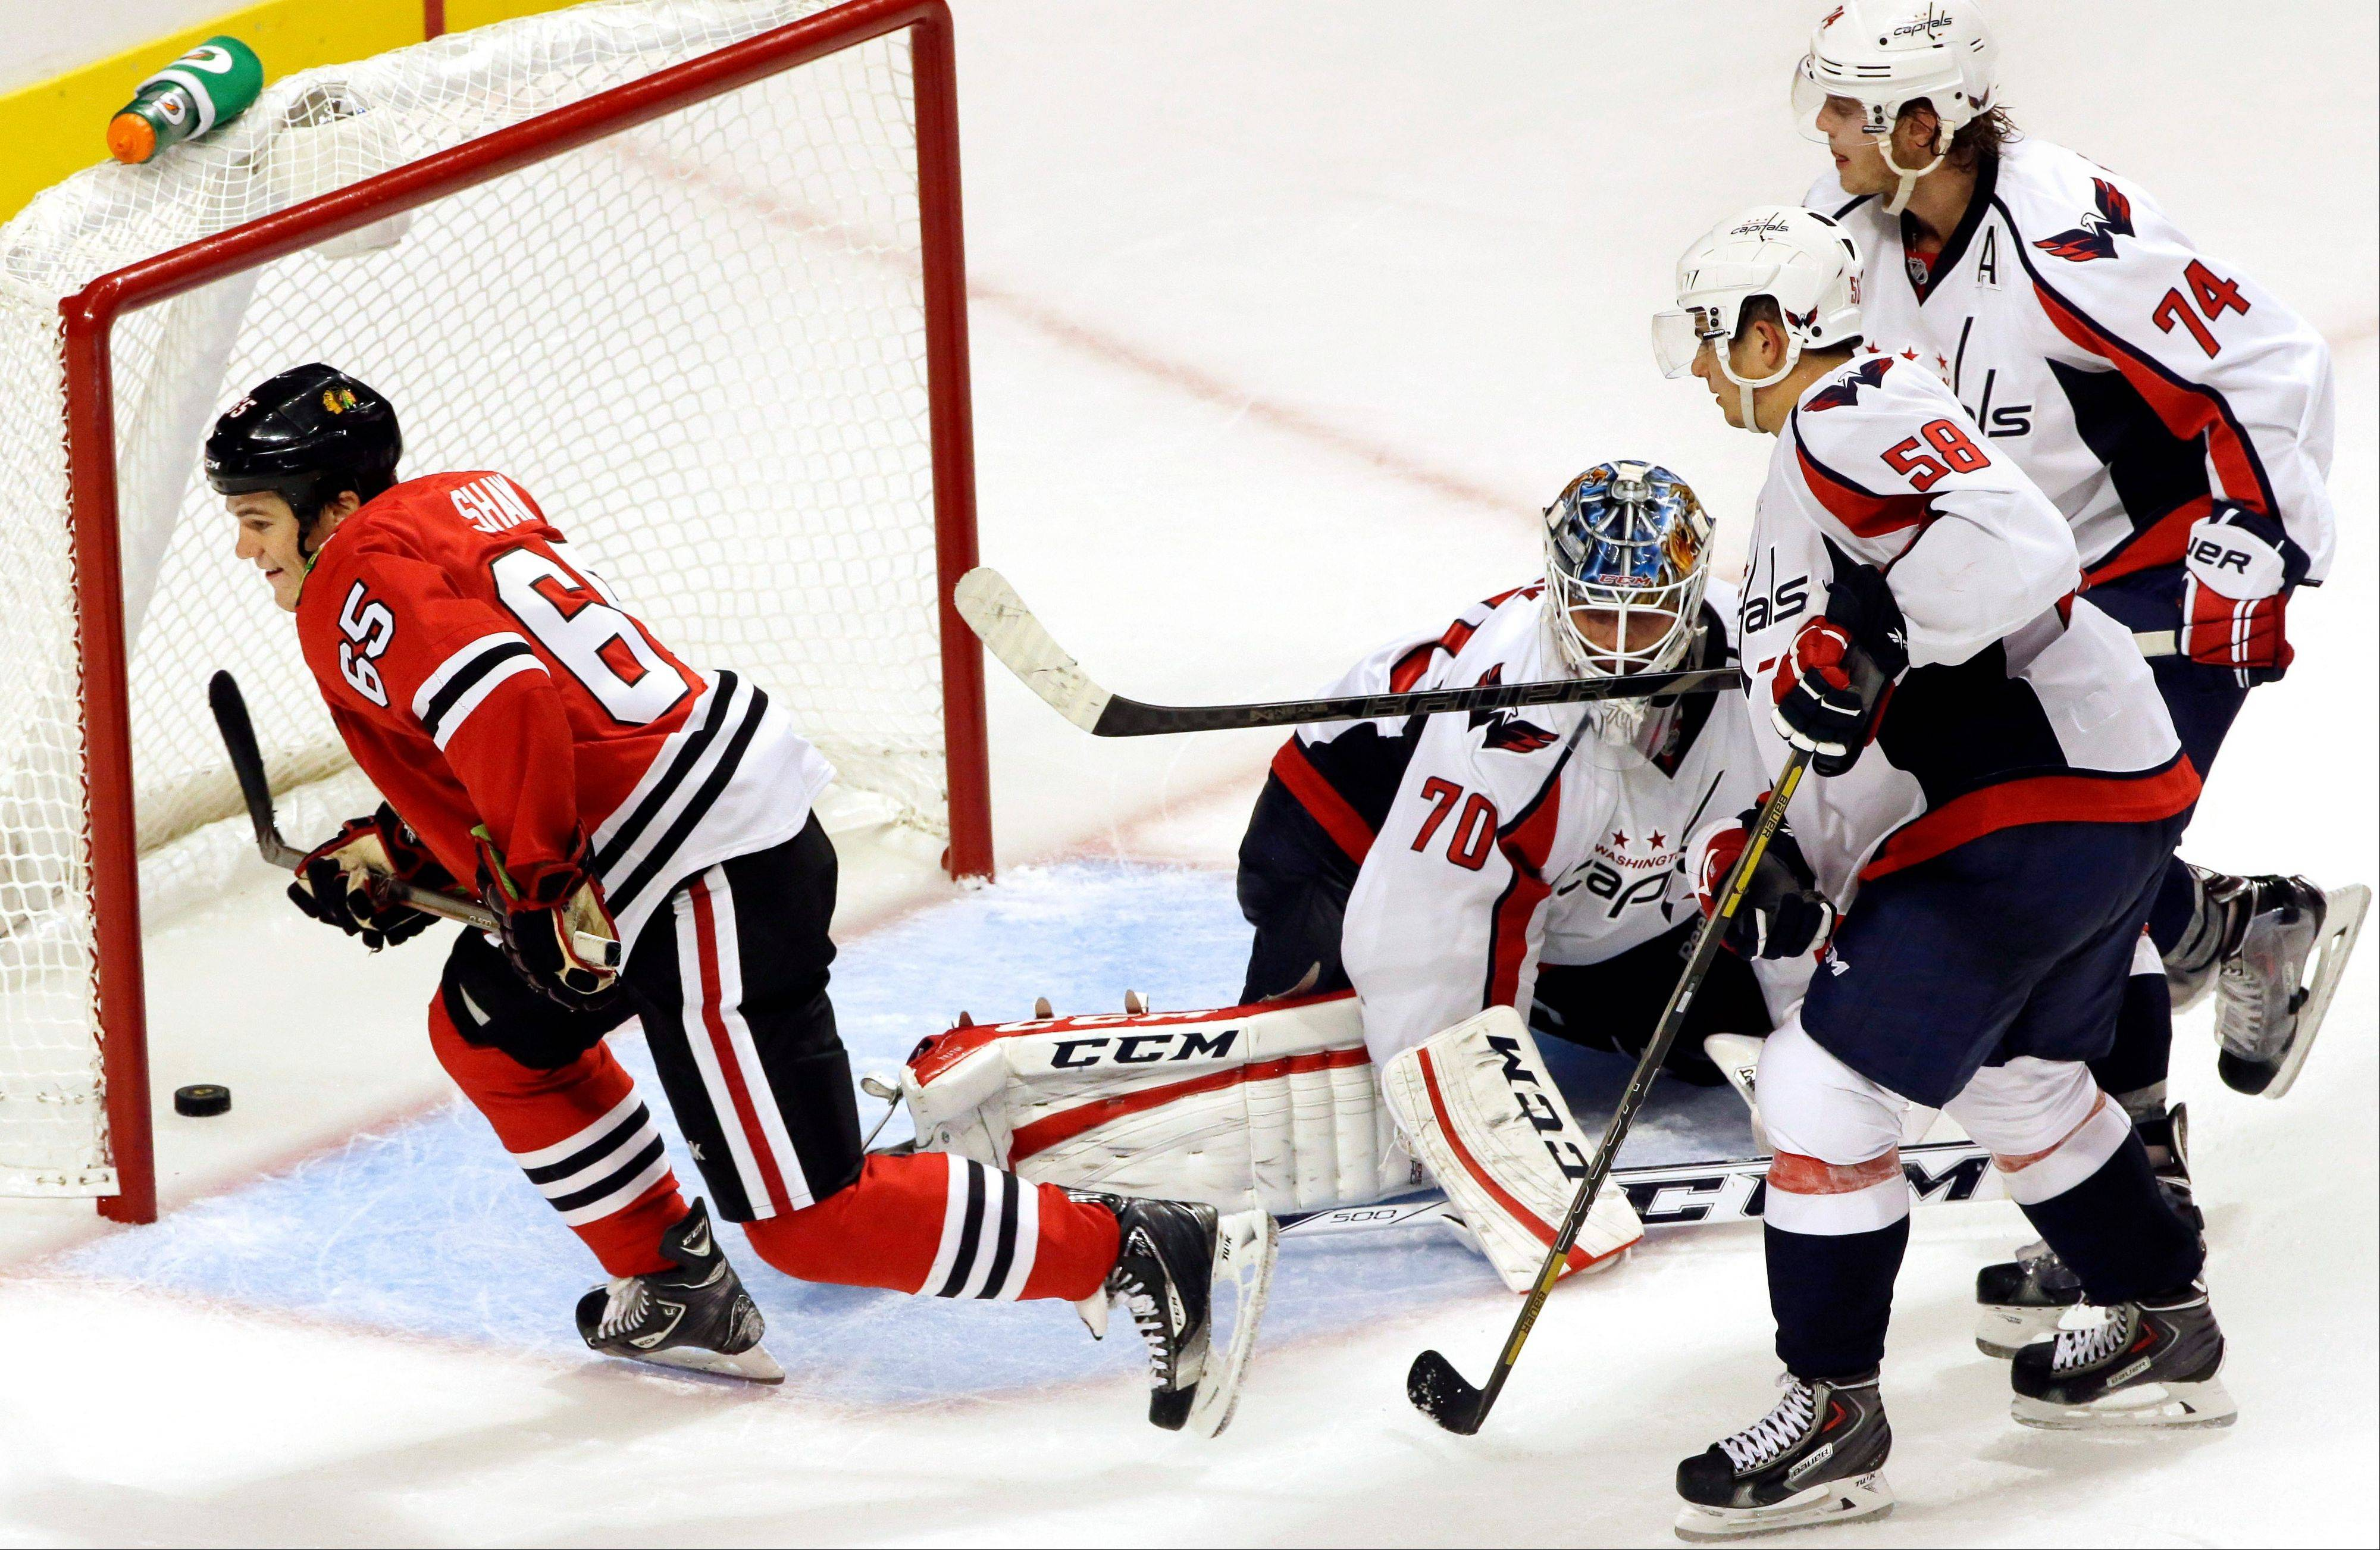 Chicago Blackhawks' Andrew Shaw (65) scores as Washington Capitals goalie Braden Holtby (70), Connor Carrick (58) and John Carlson (74) react during overtime of an NHL preseason hockey game in Chicago Saturday. The Blackhawks won 4-3.